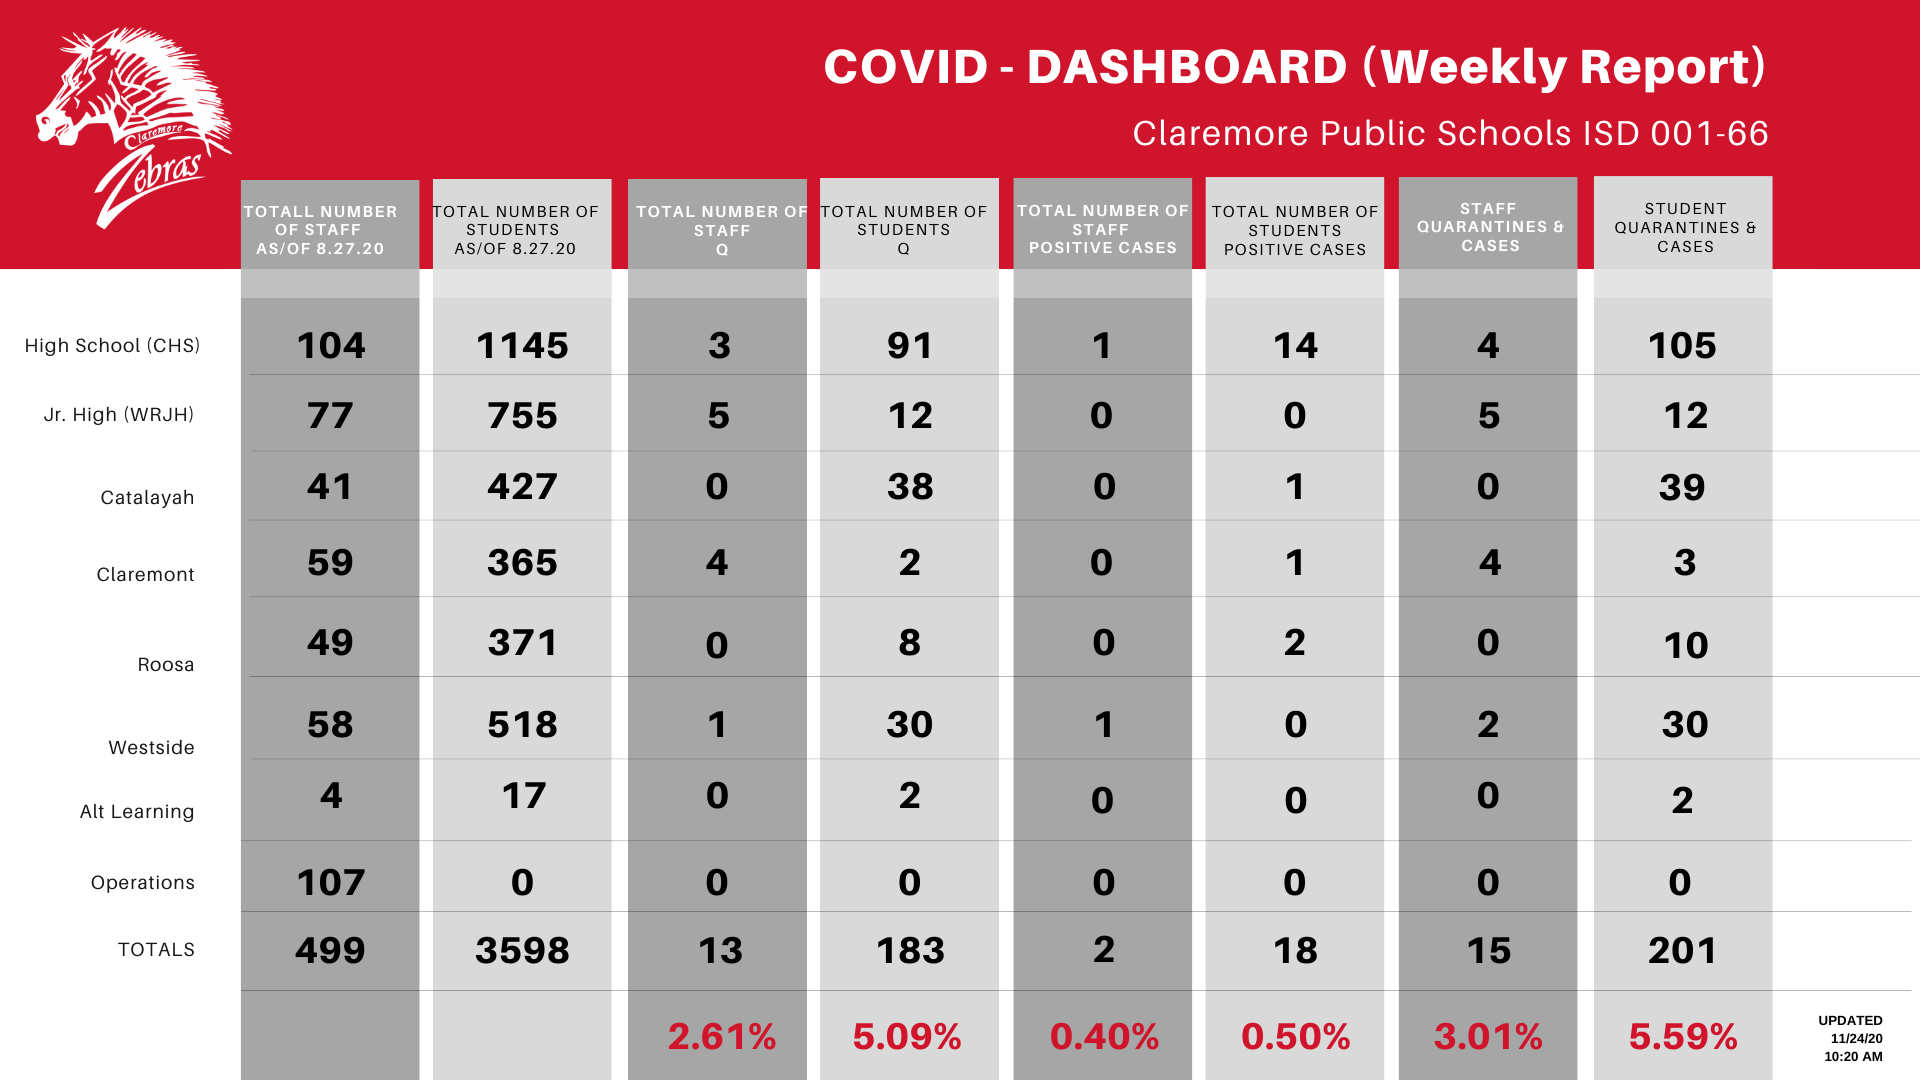 COVID DASHBOARD WEEKLY REPORT